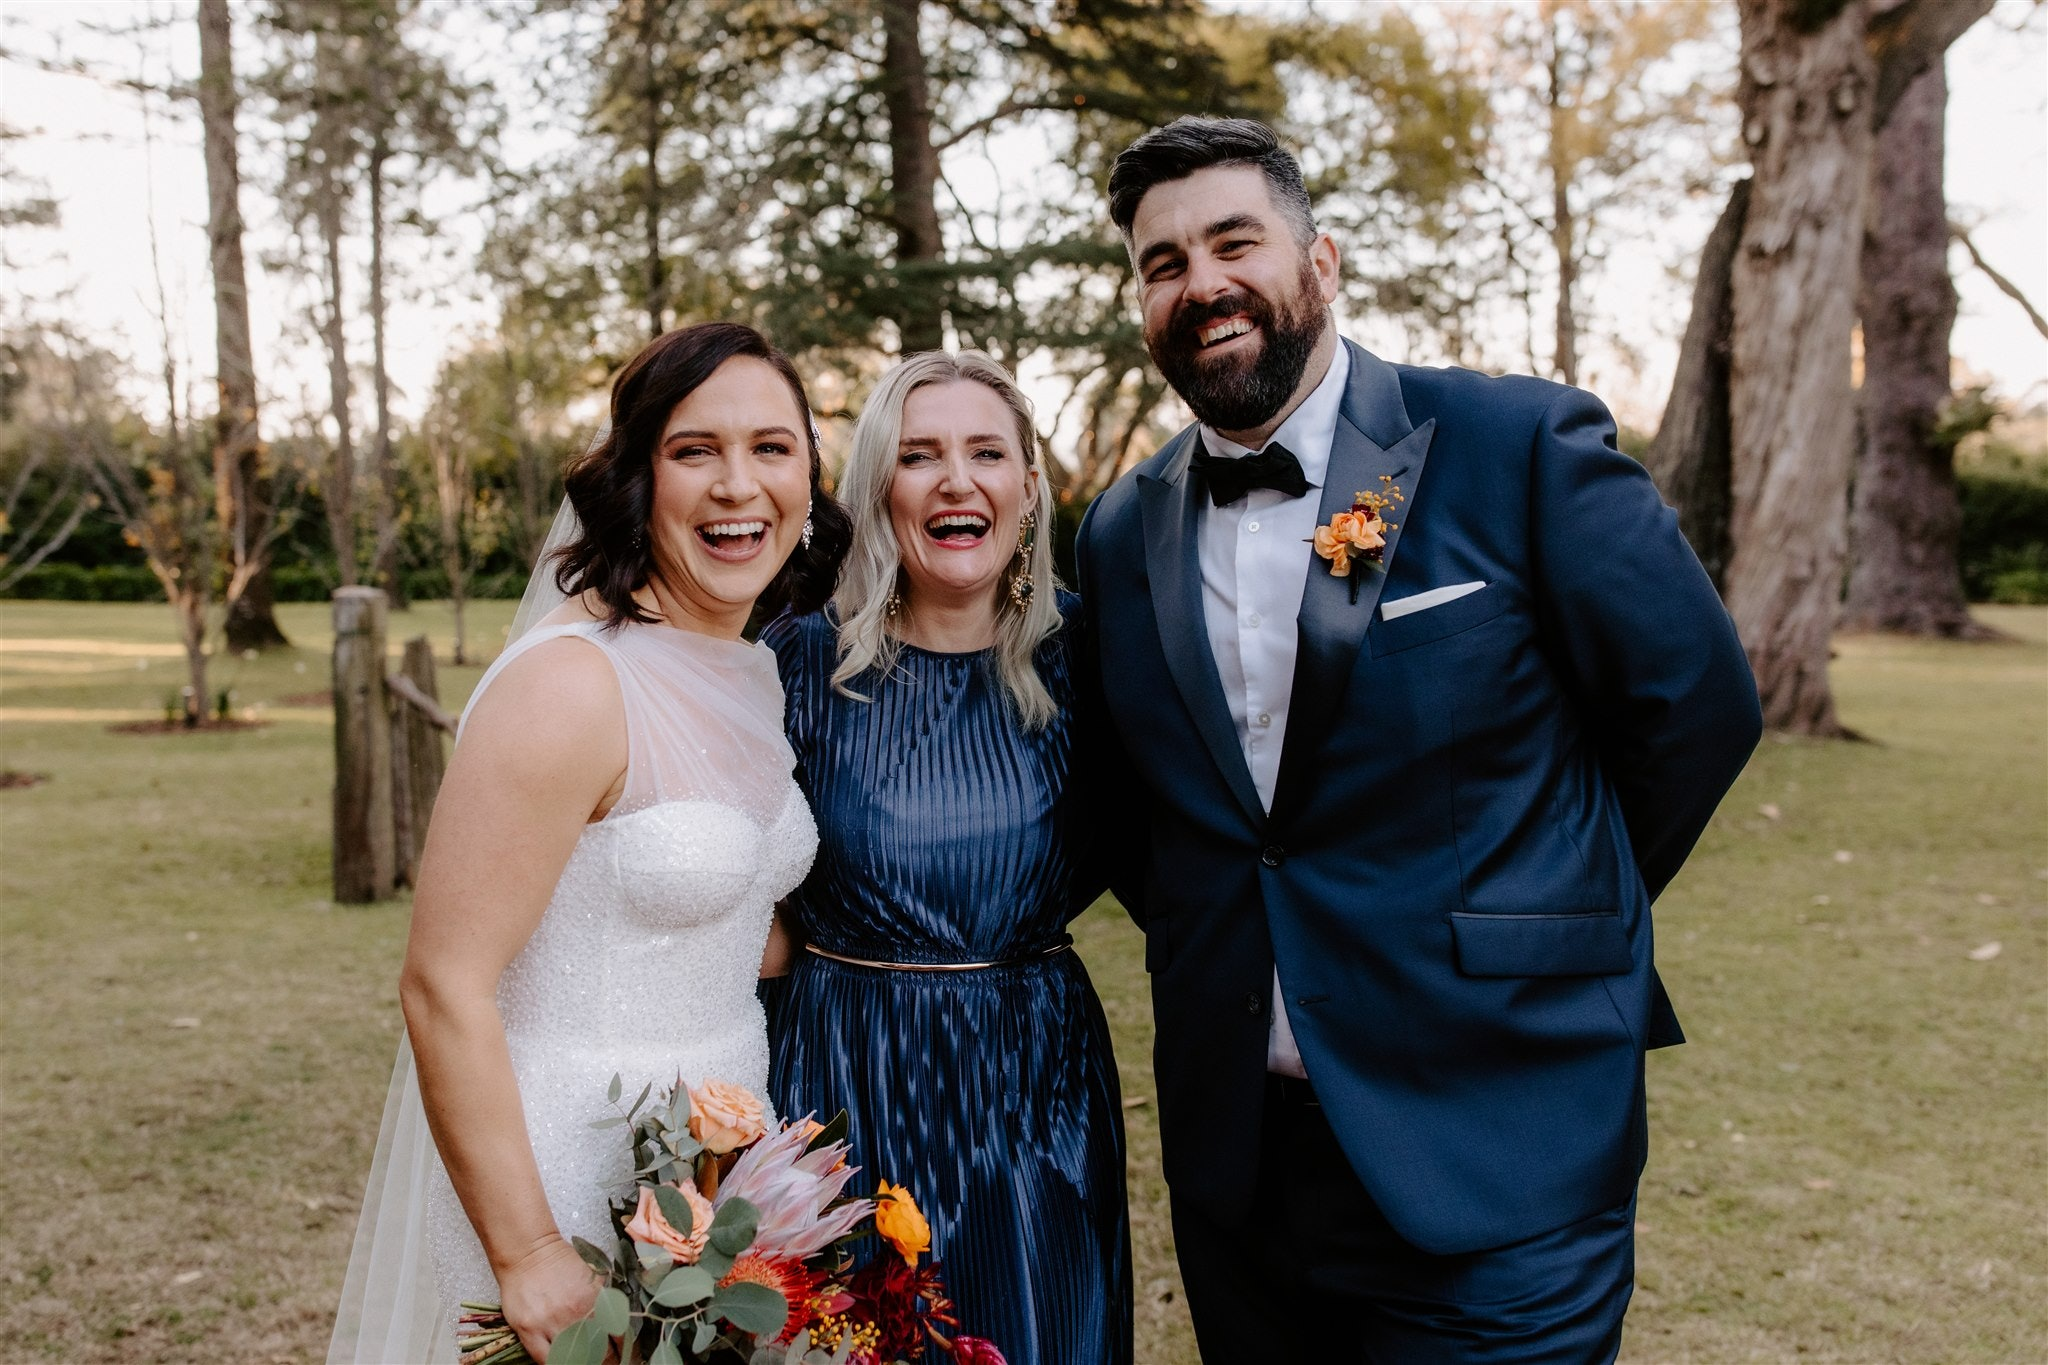 Bride and groom standing with friend laughing